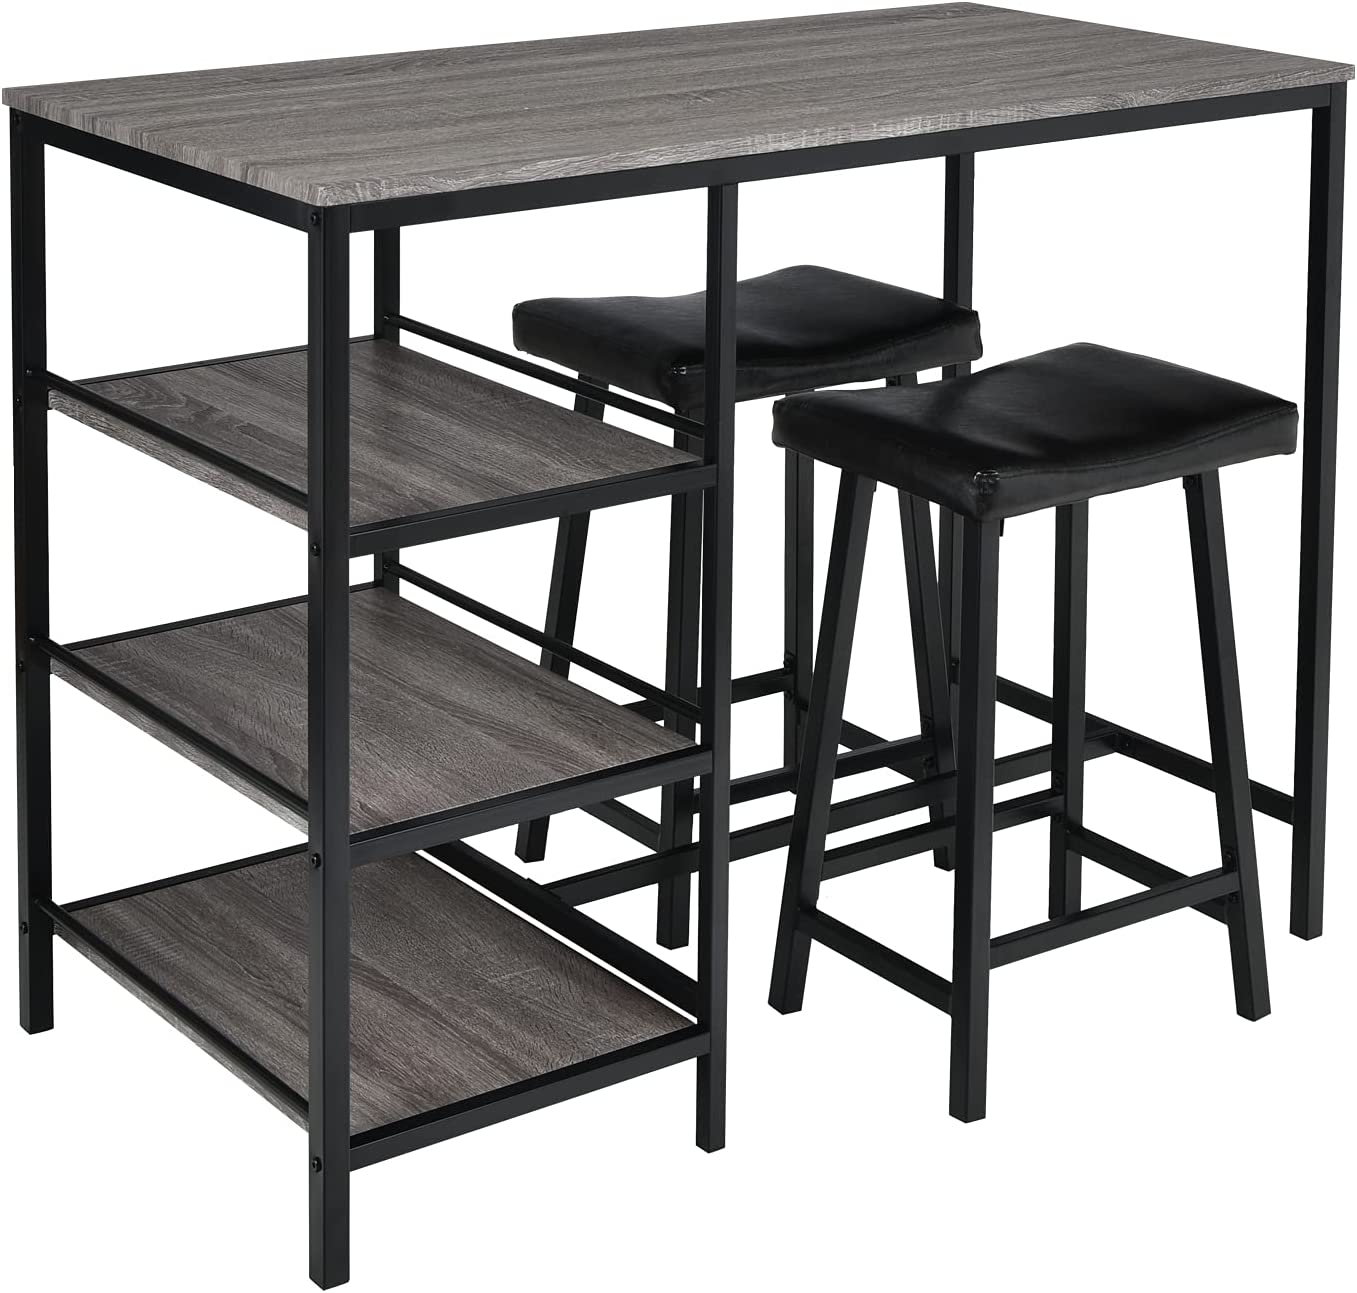 GLACER 3-Piece Dining Set Counter Max 65% OFF Height Regular dealer 2 Cu Table with